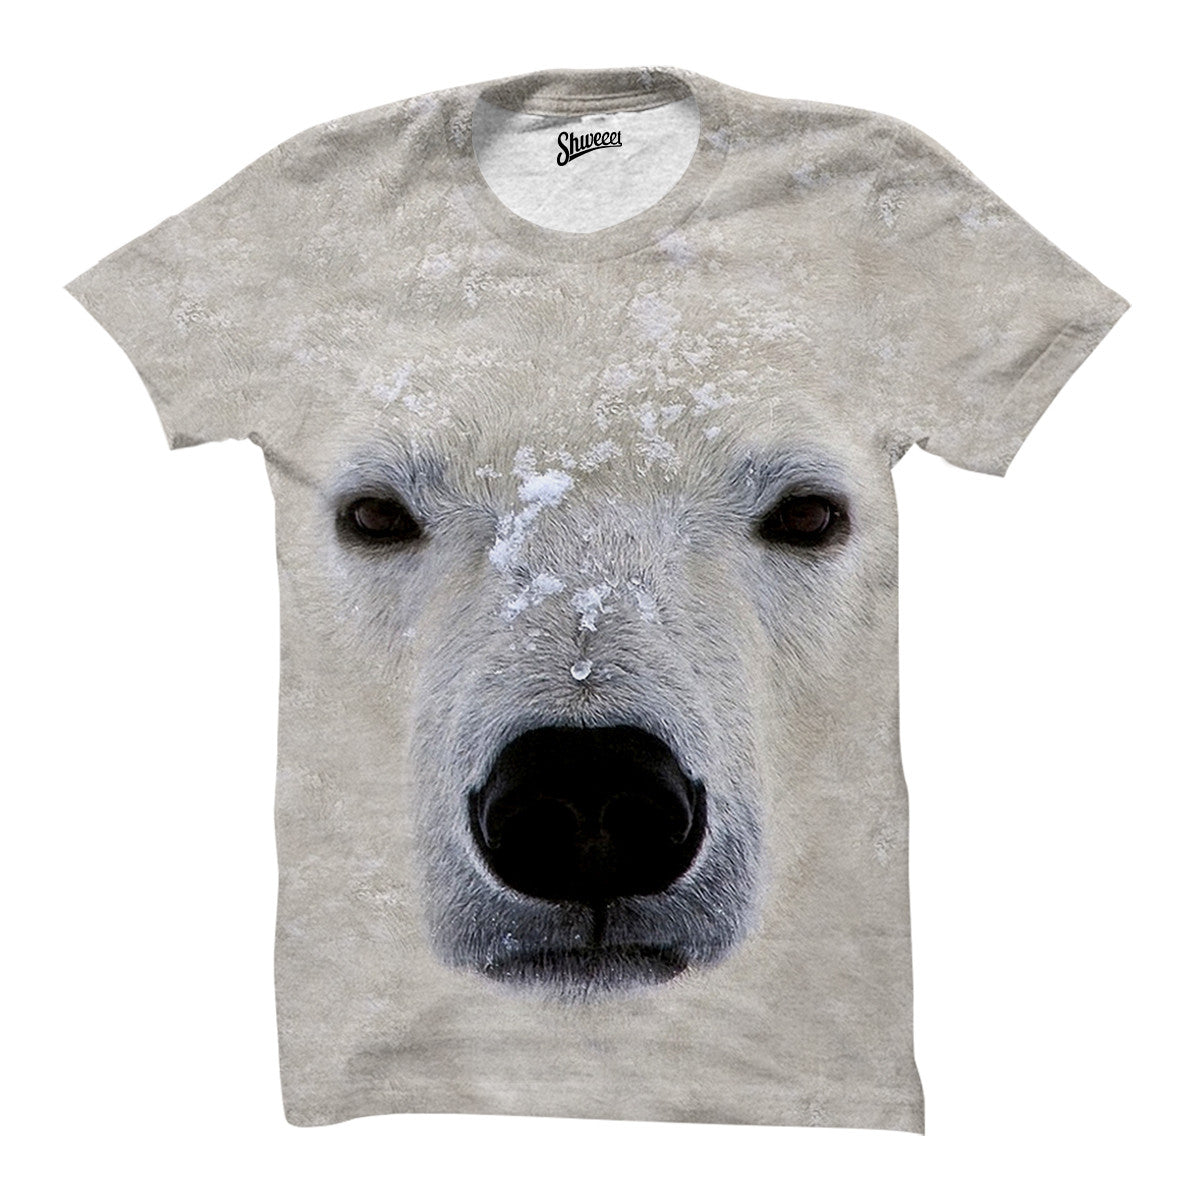 Polar Bear T shirt - Shweeet